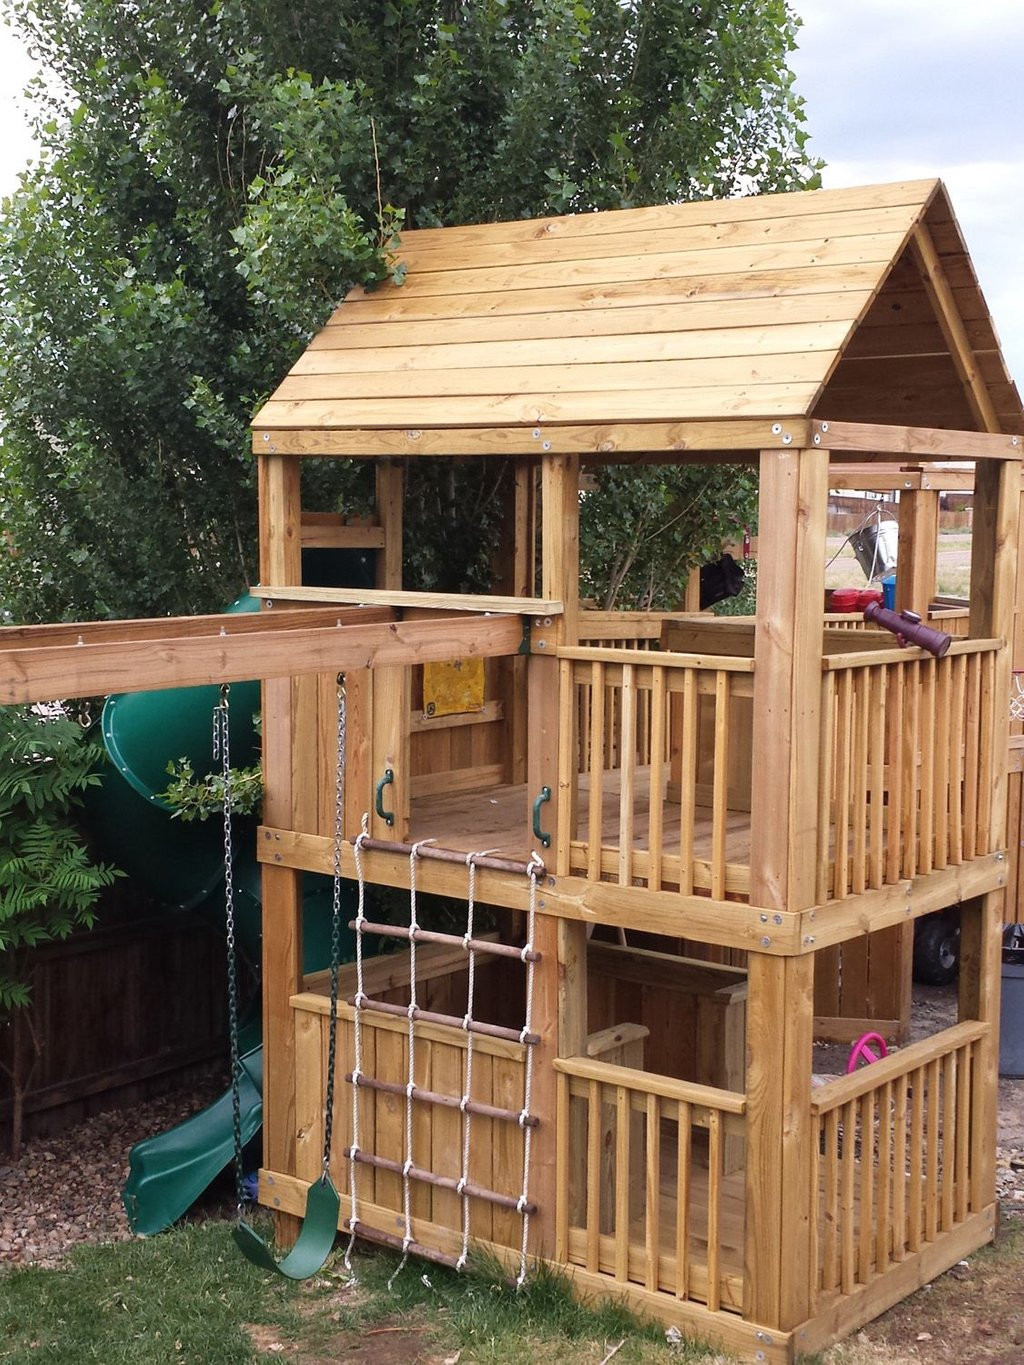 DIY Wood Playhouse  How To Build Yourself Wooden Playhouse Kits – Loccie